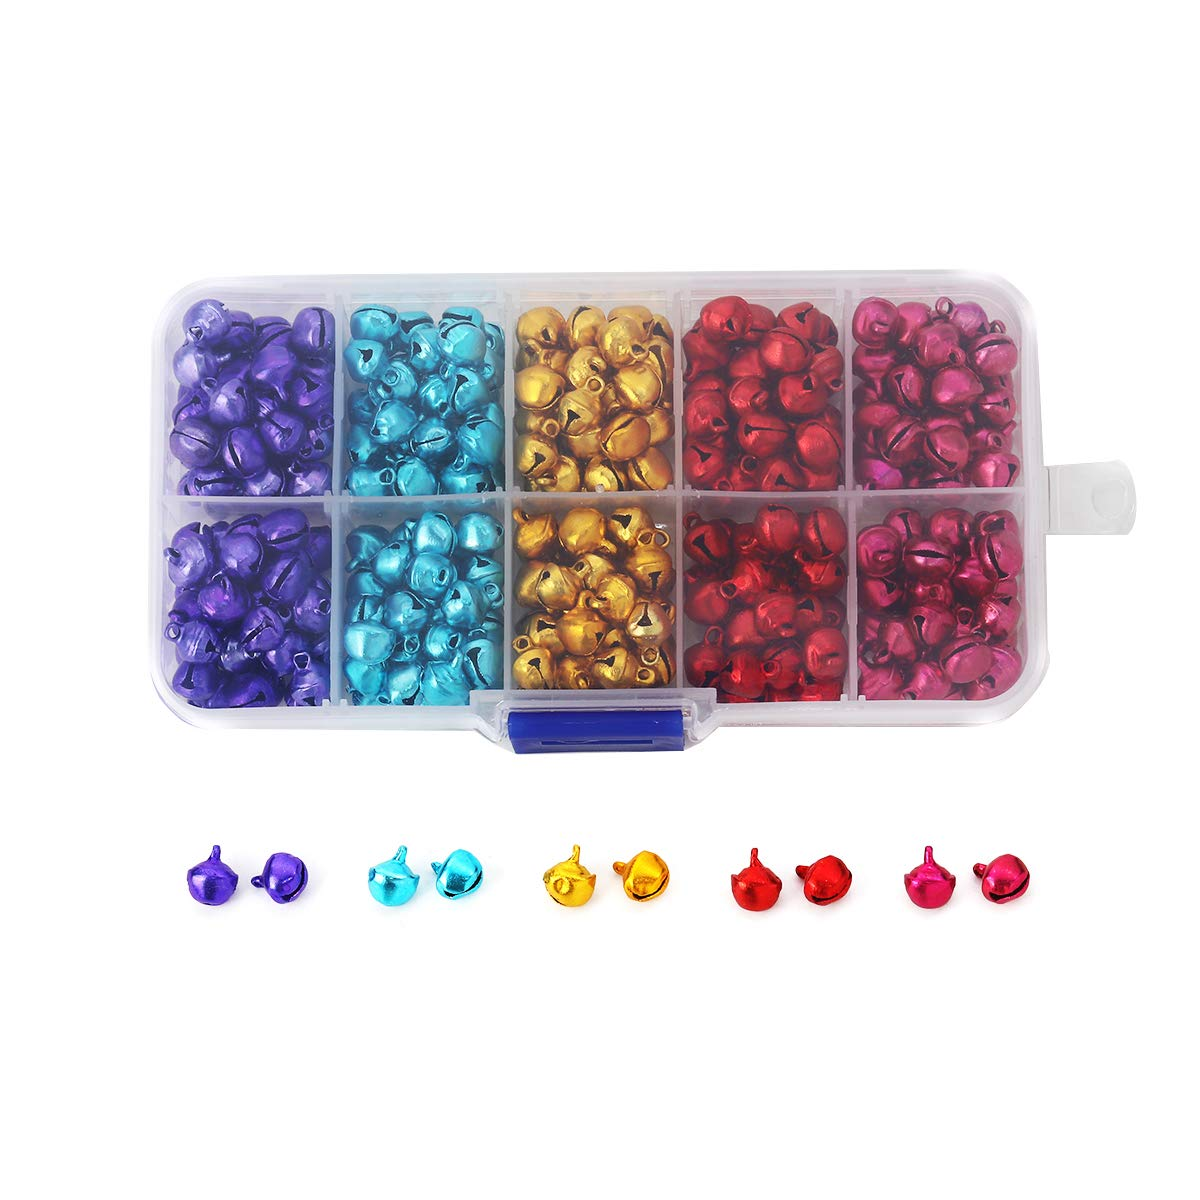 Houlife Aluminum Christmas Jingle Bells Small Bells Loose Beads Charms for Festival Decoration DIY Craft Jewelry Making Findings Approx 300pcs, 9x8mm, 5 Colors Aohao